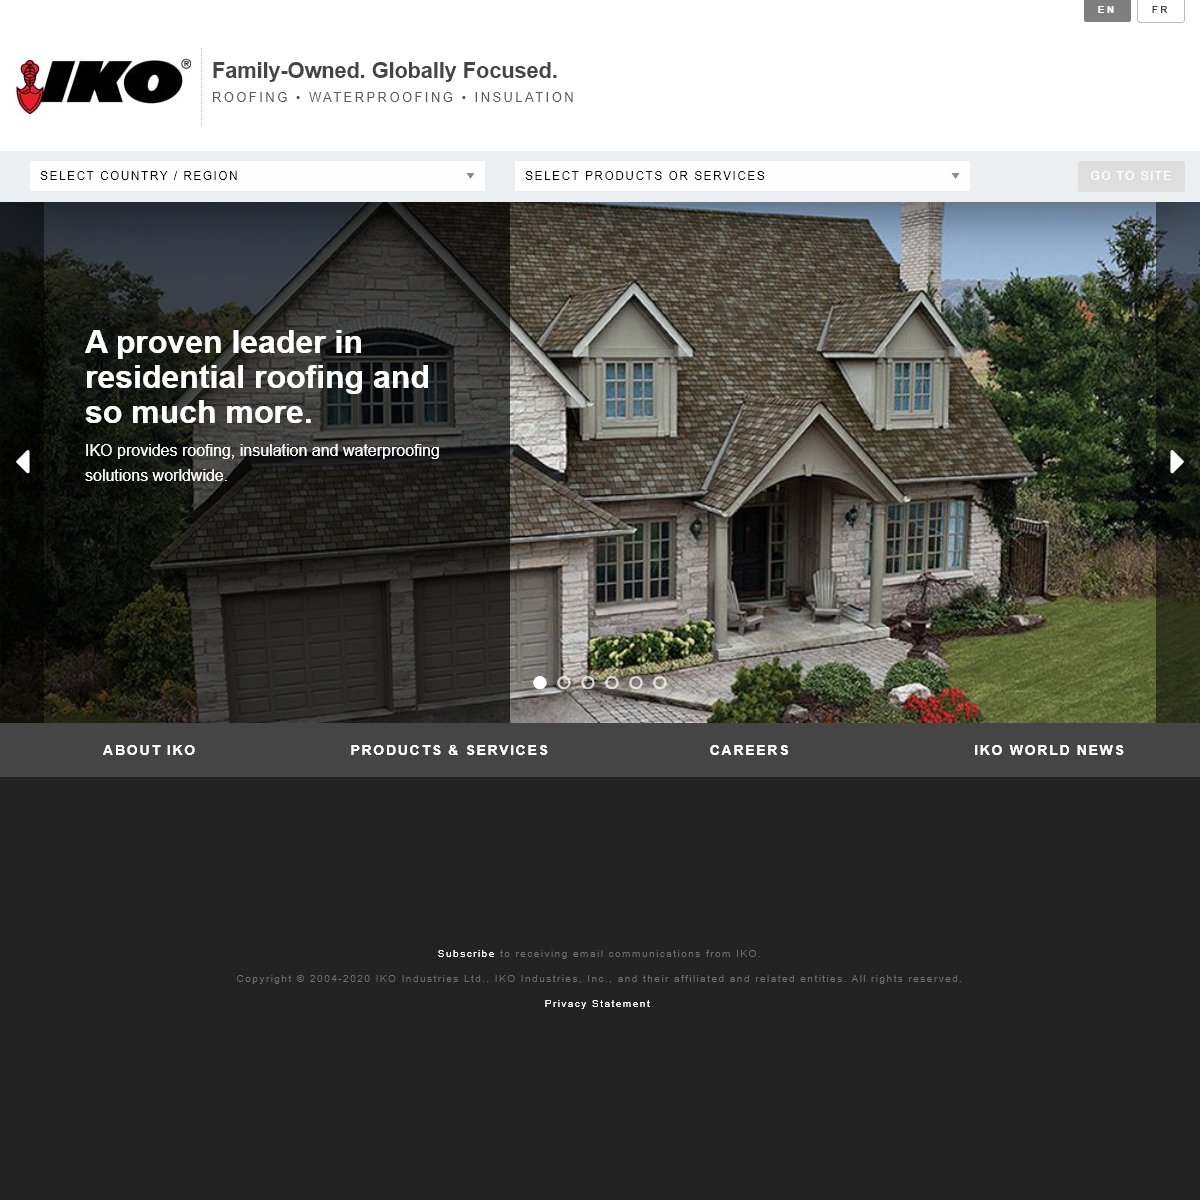 Shingle Manufacturer - Roofing, Waterproofing & Insulation Products - IKO